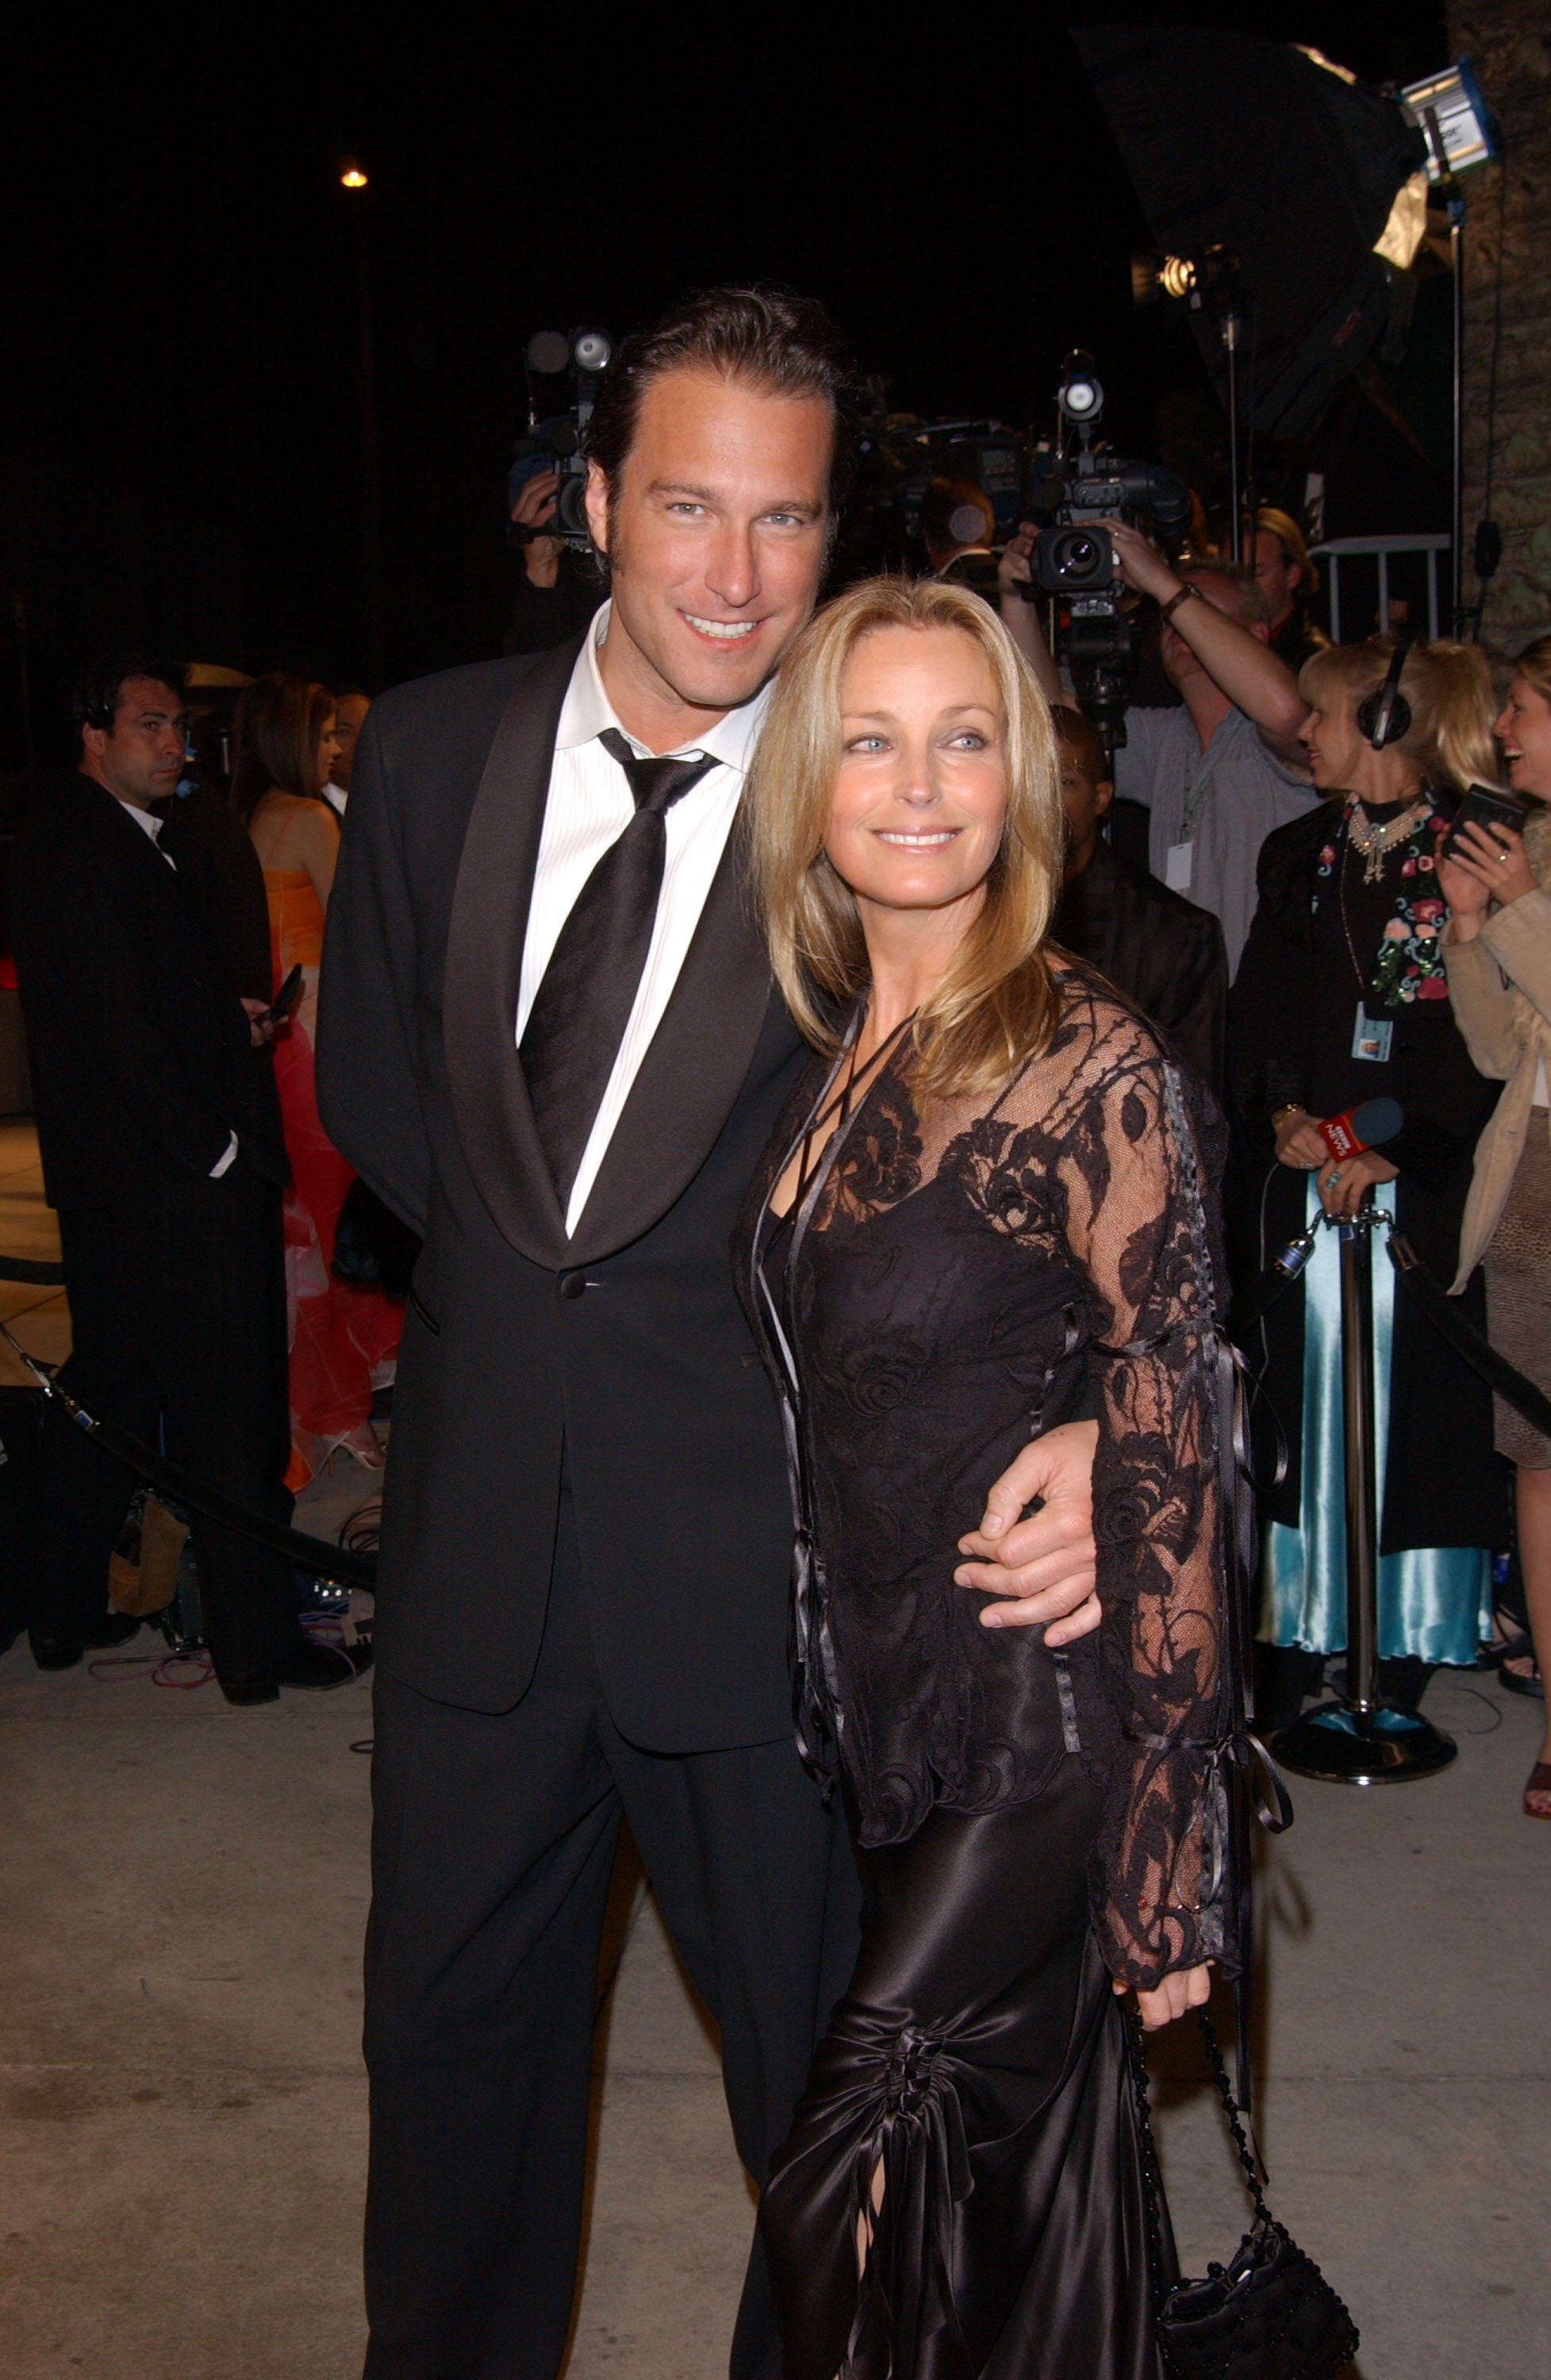 Image Credits: Getty Images / The model and Hollywood actor Bo Derek and John Corbett are photographed by the press.